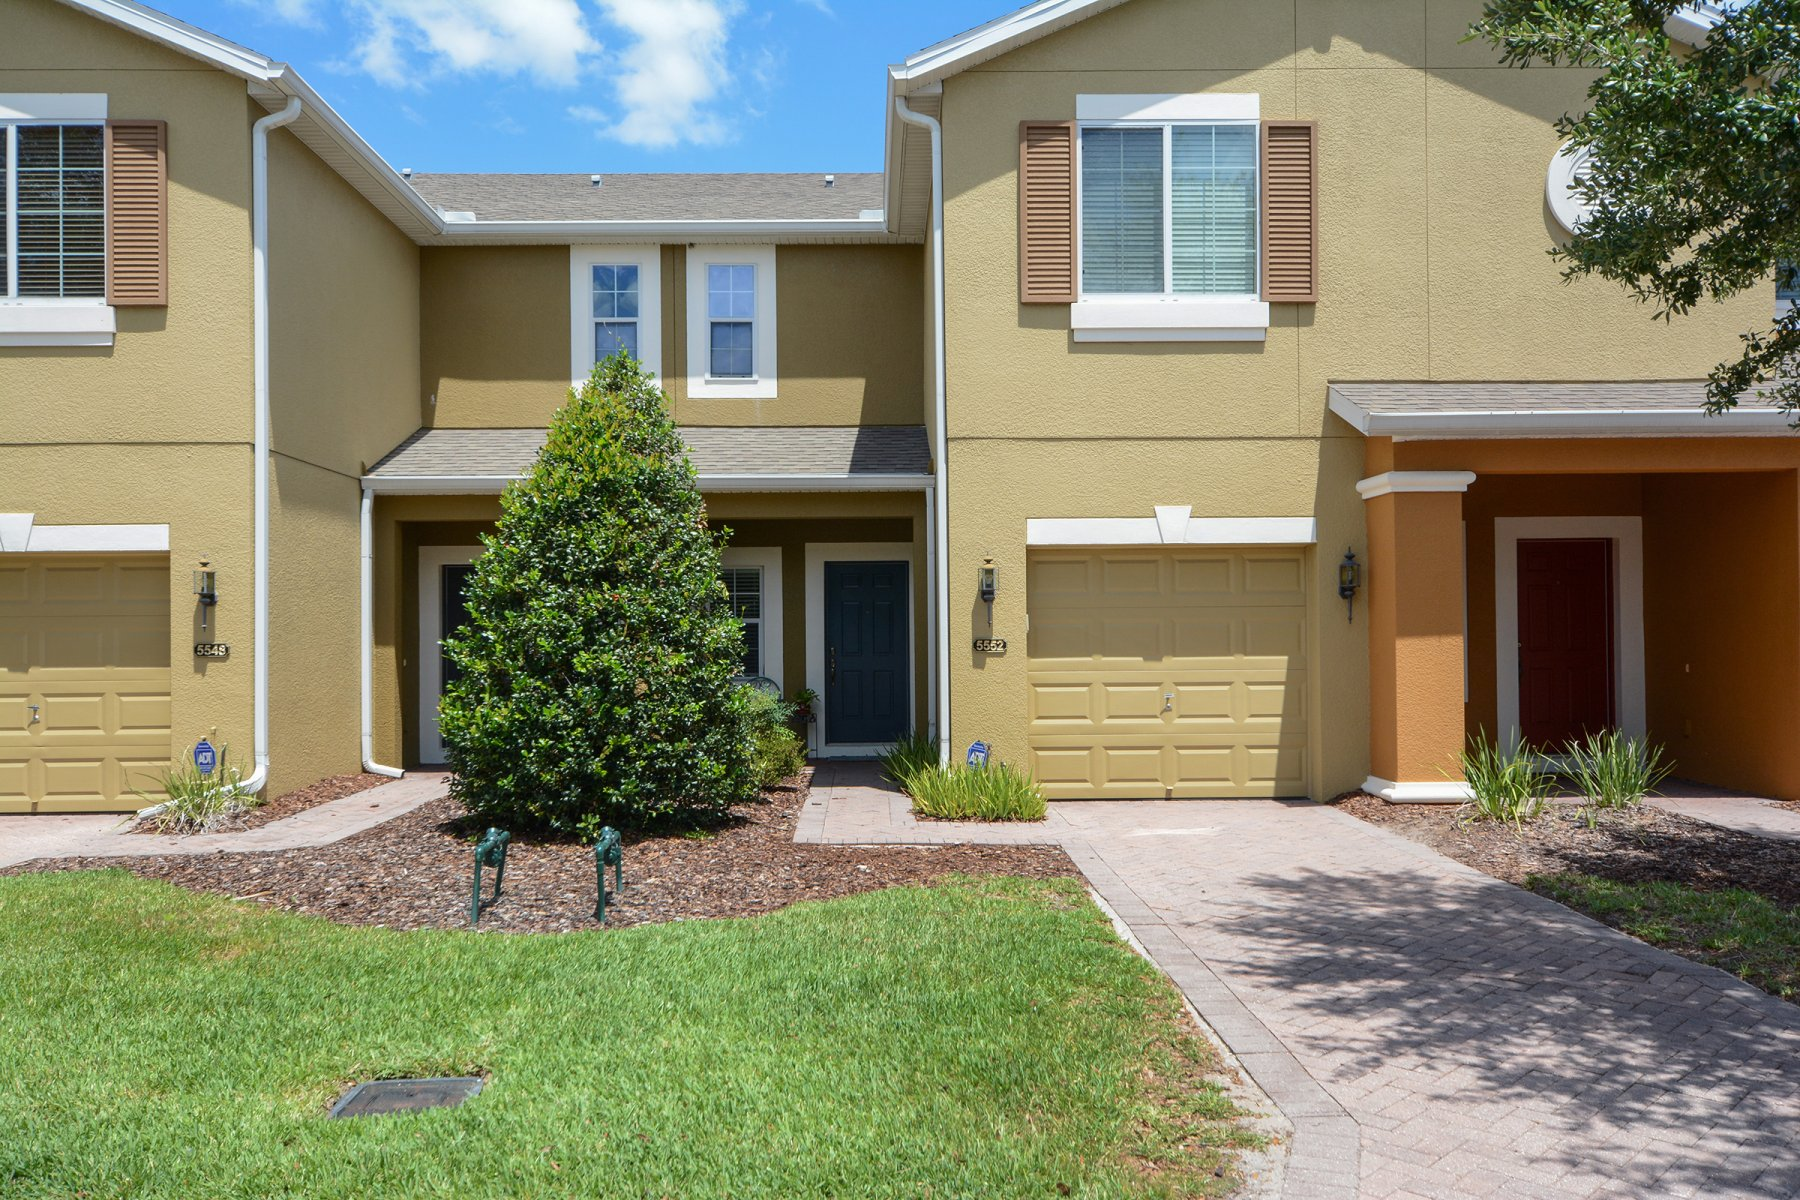 5552 Rutherford Pl, Oviedo, FL 32765 (22)